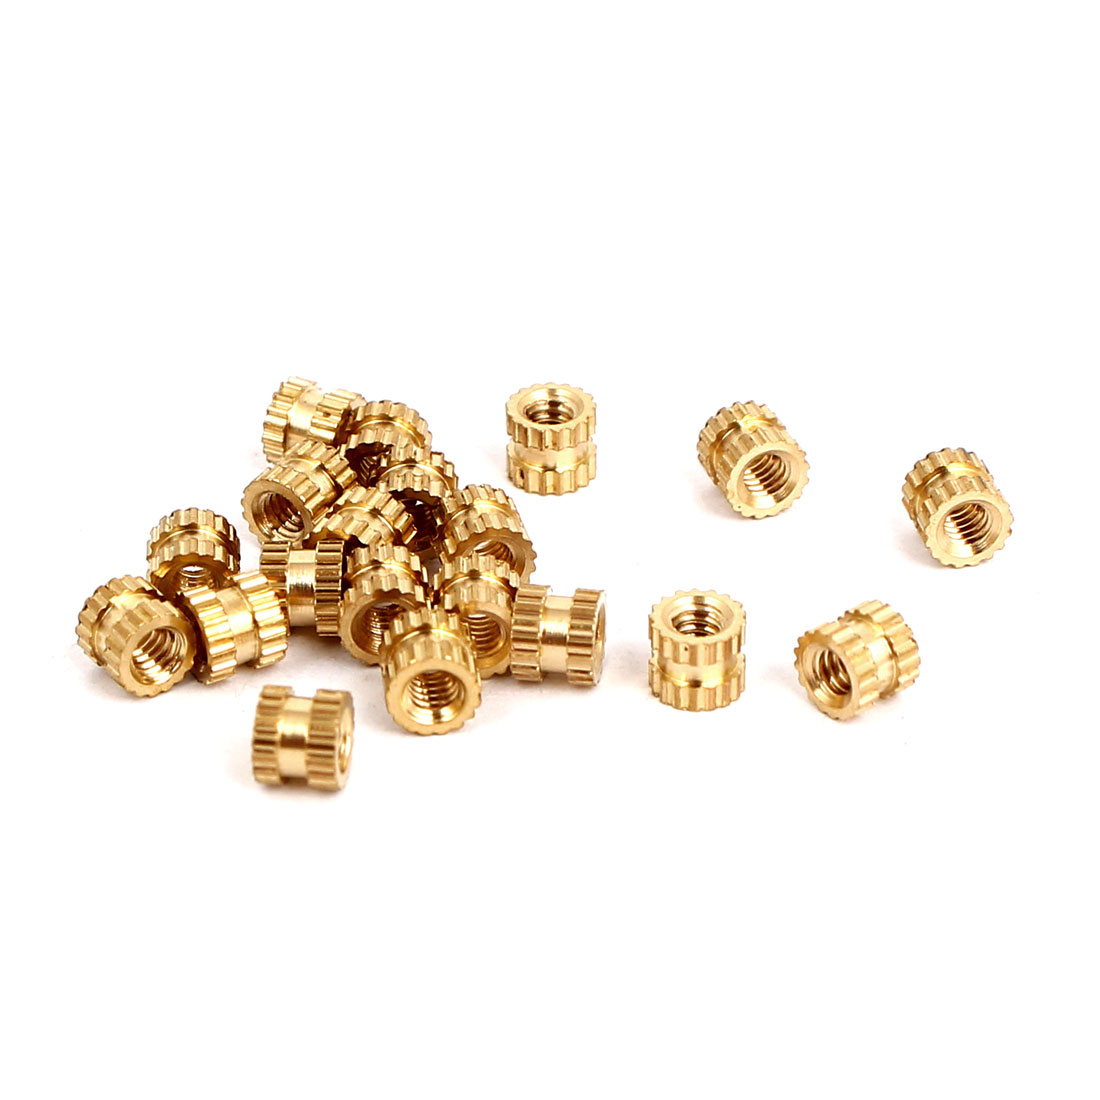 M2x3mmx3.5mm Female Threaded Brass Knurled Insert Embedded Nuts Gold Tone 20pcs